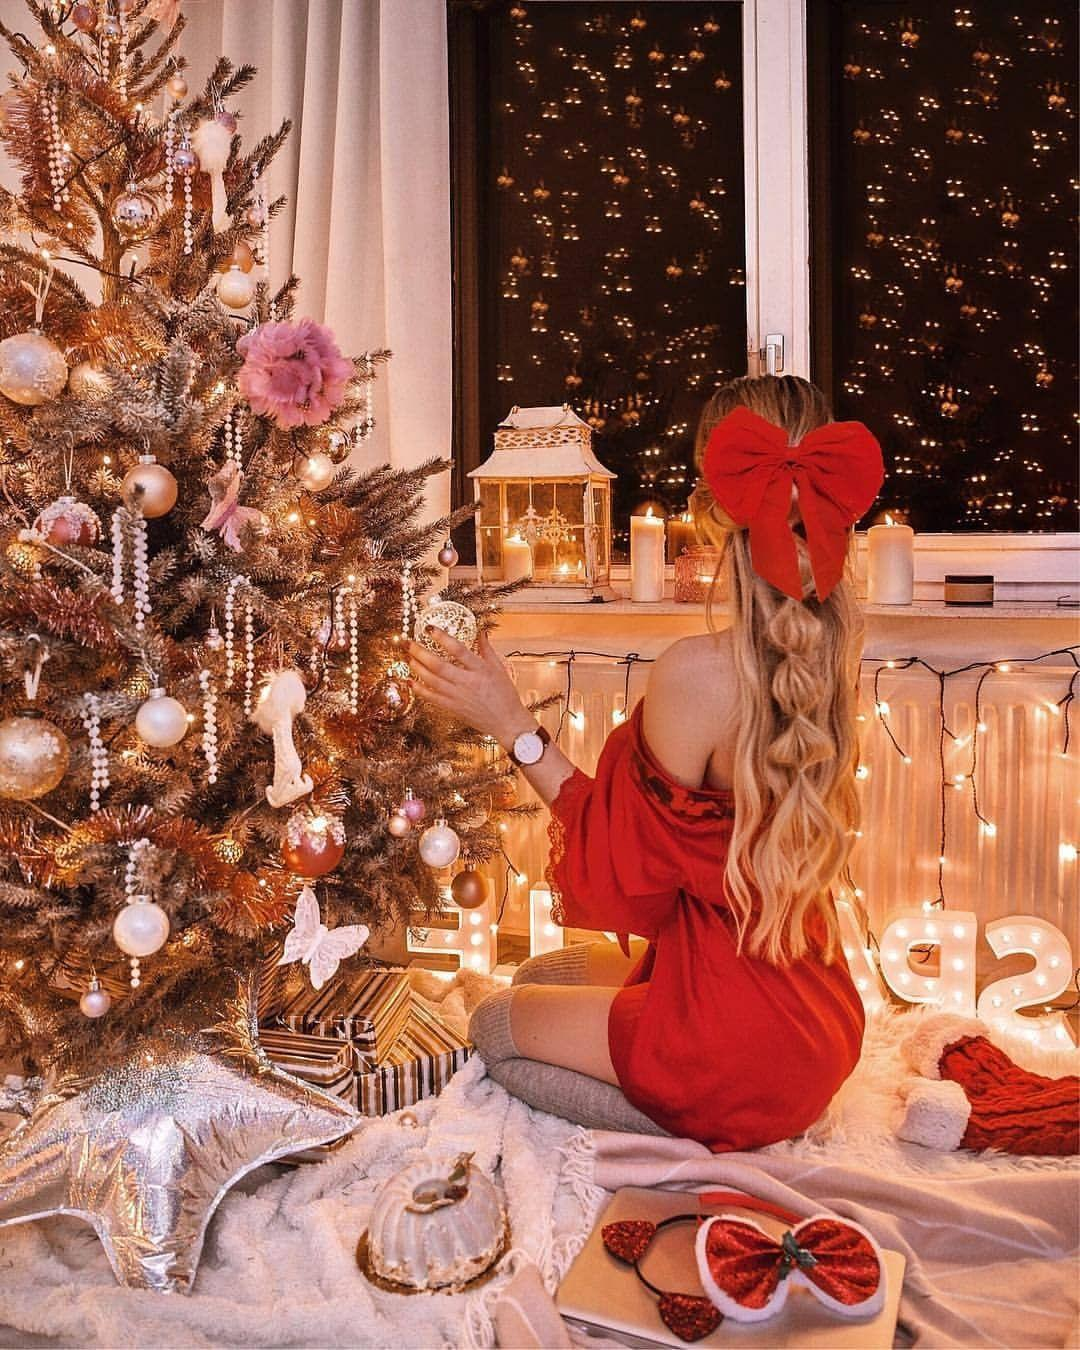 Cute girl in red mini dress with ribbon in hair unpacking Christmas presents